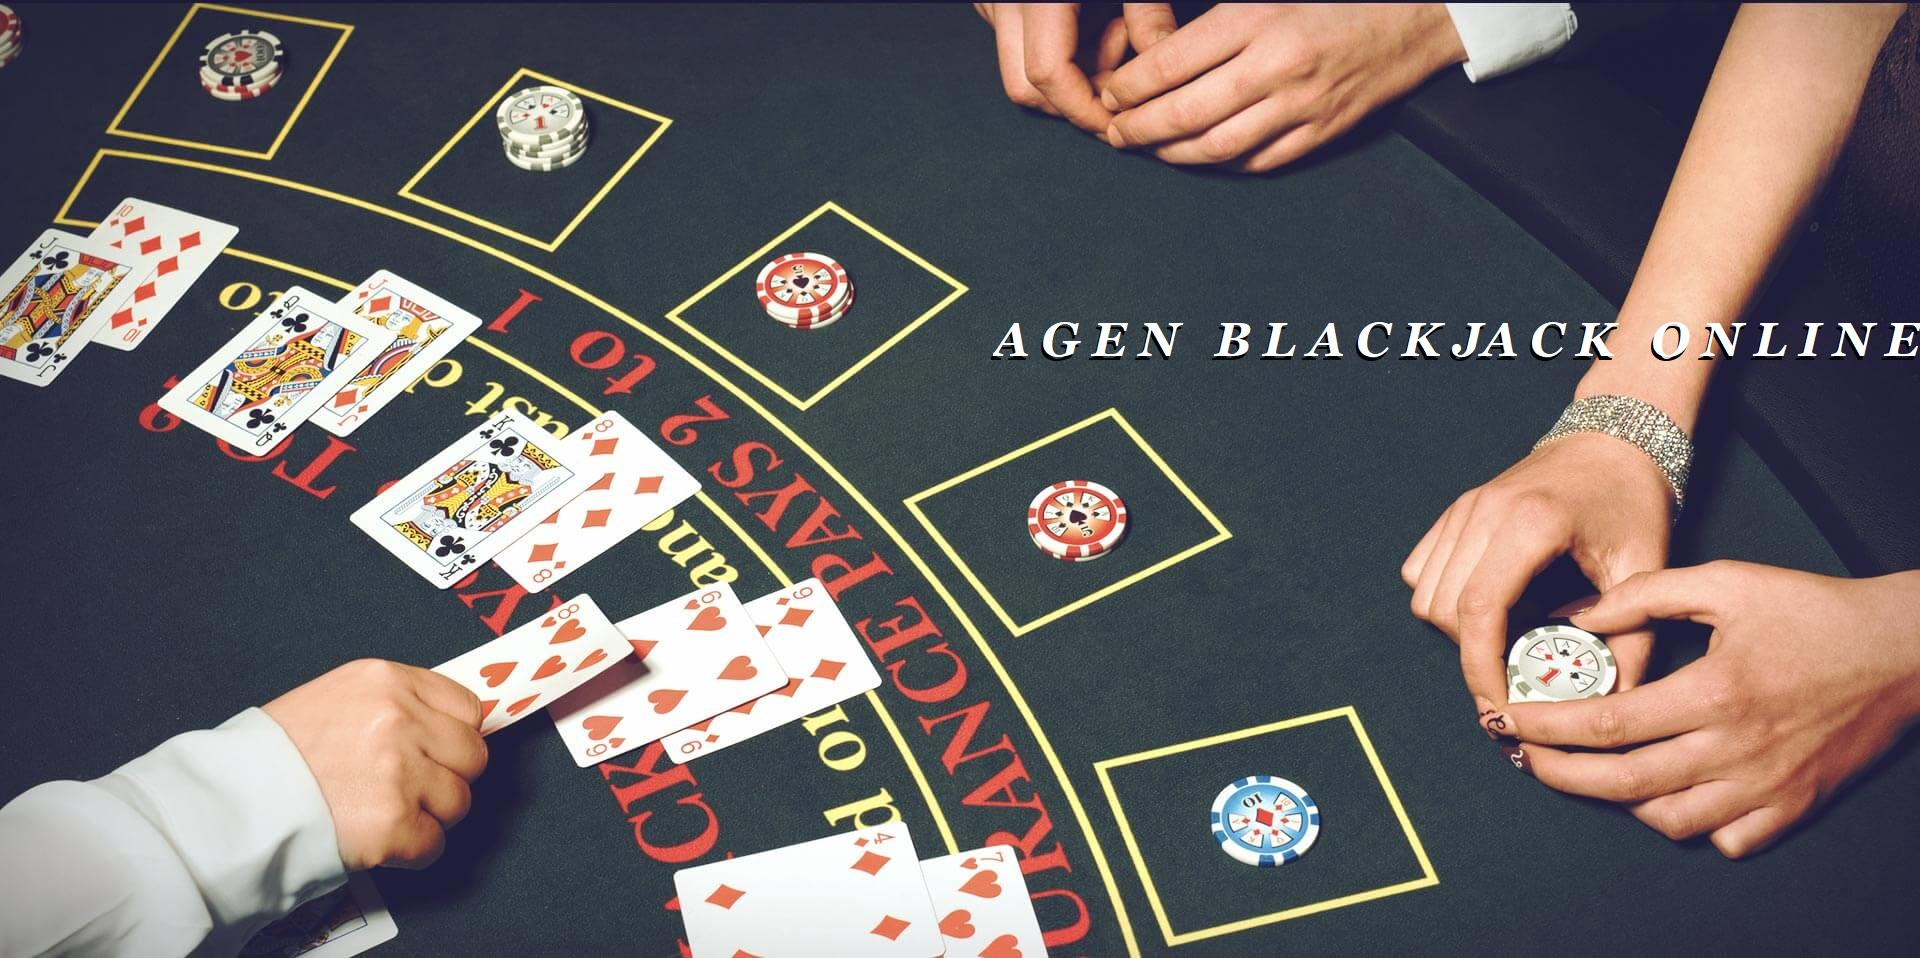 Game Blackjack Online